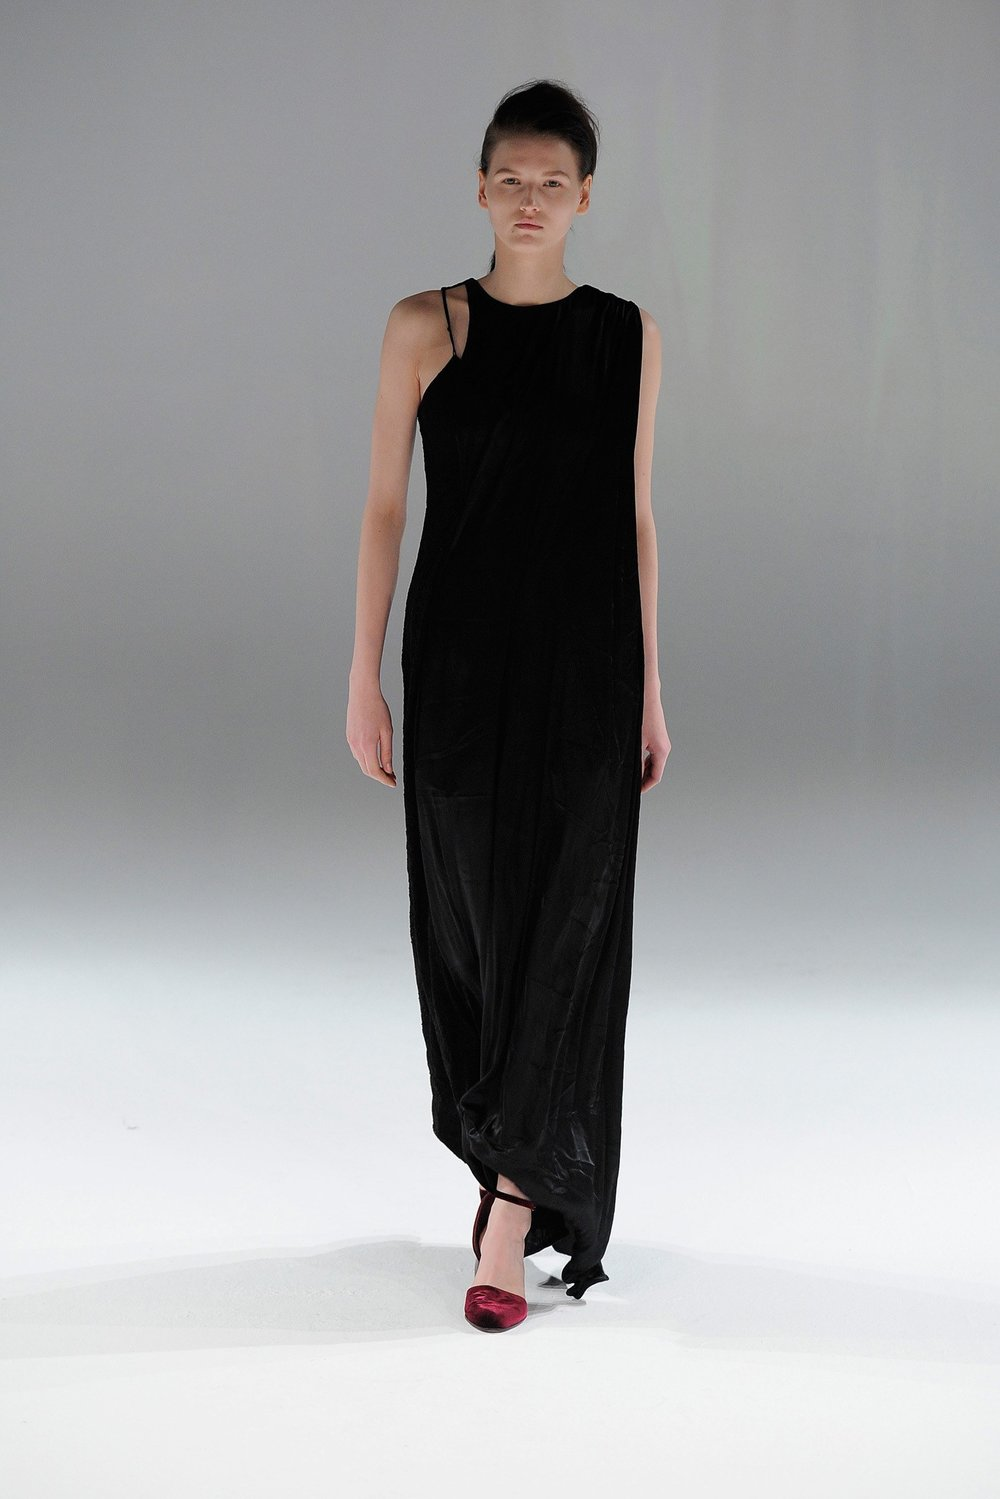 A transforming dress in Hussein Chalayan's Fall 2013 runway show. Image from Vogue.com.